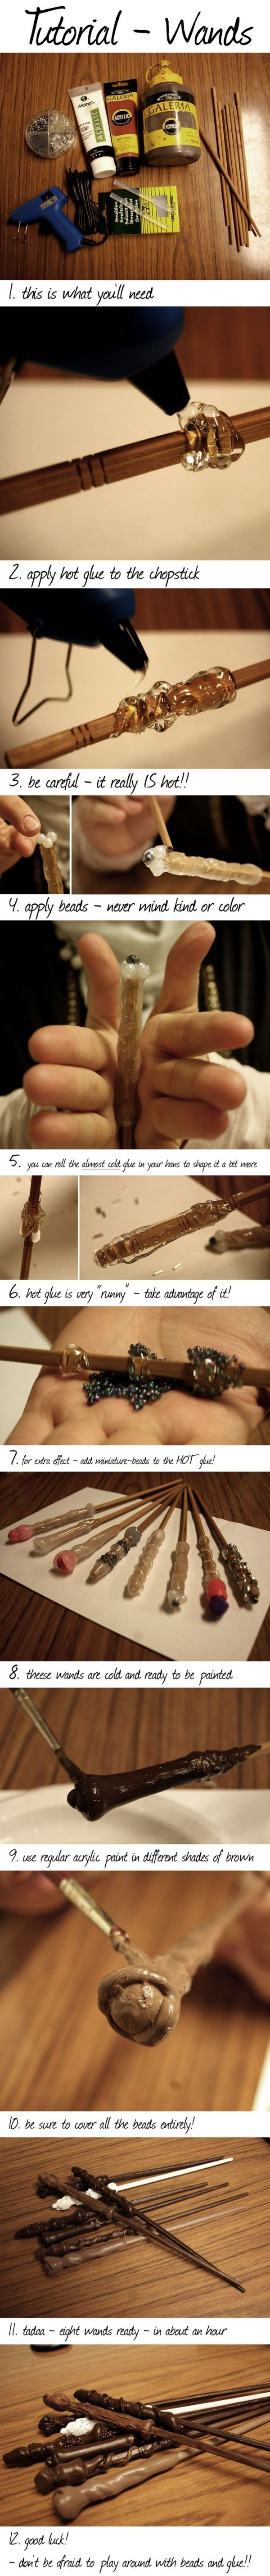 DIY Wand Tutorial! by monicalgn